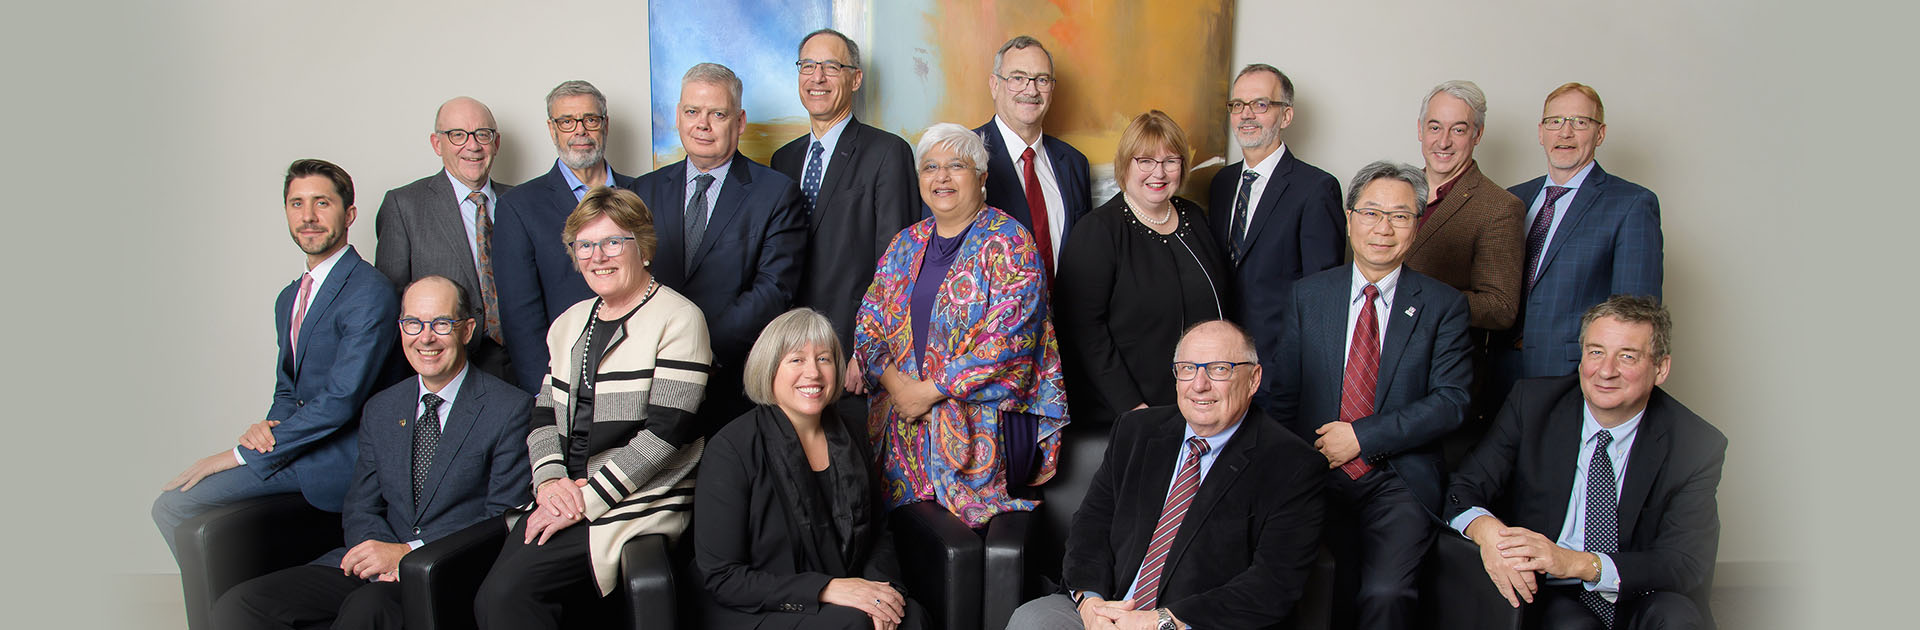 Image of AFMC board